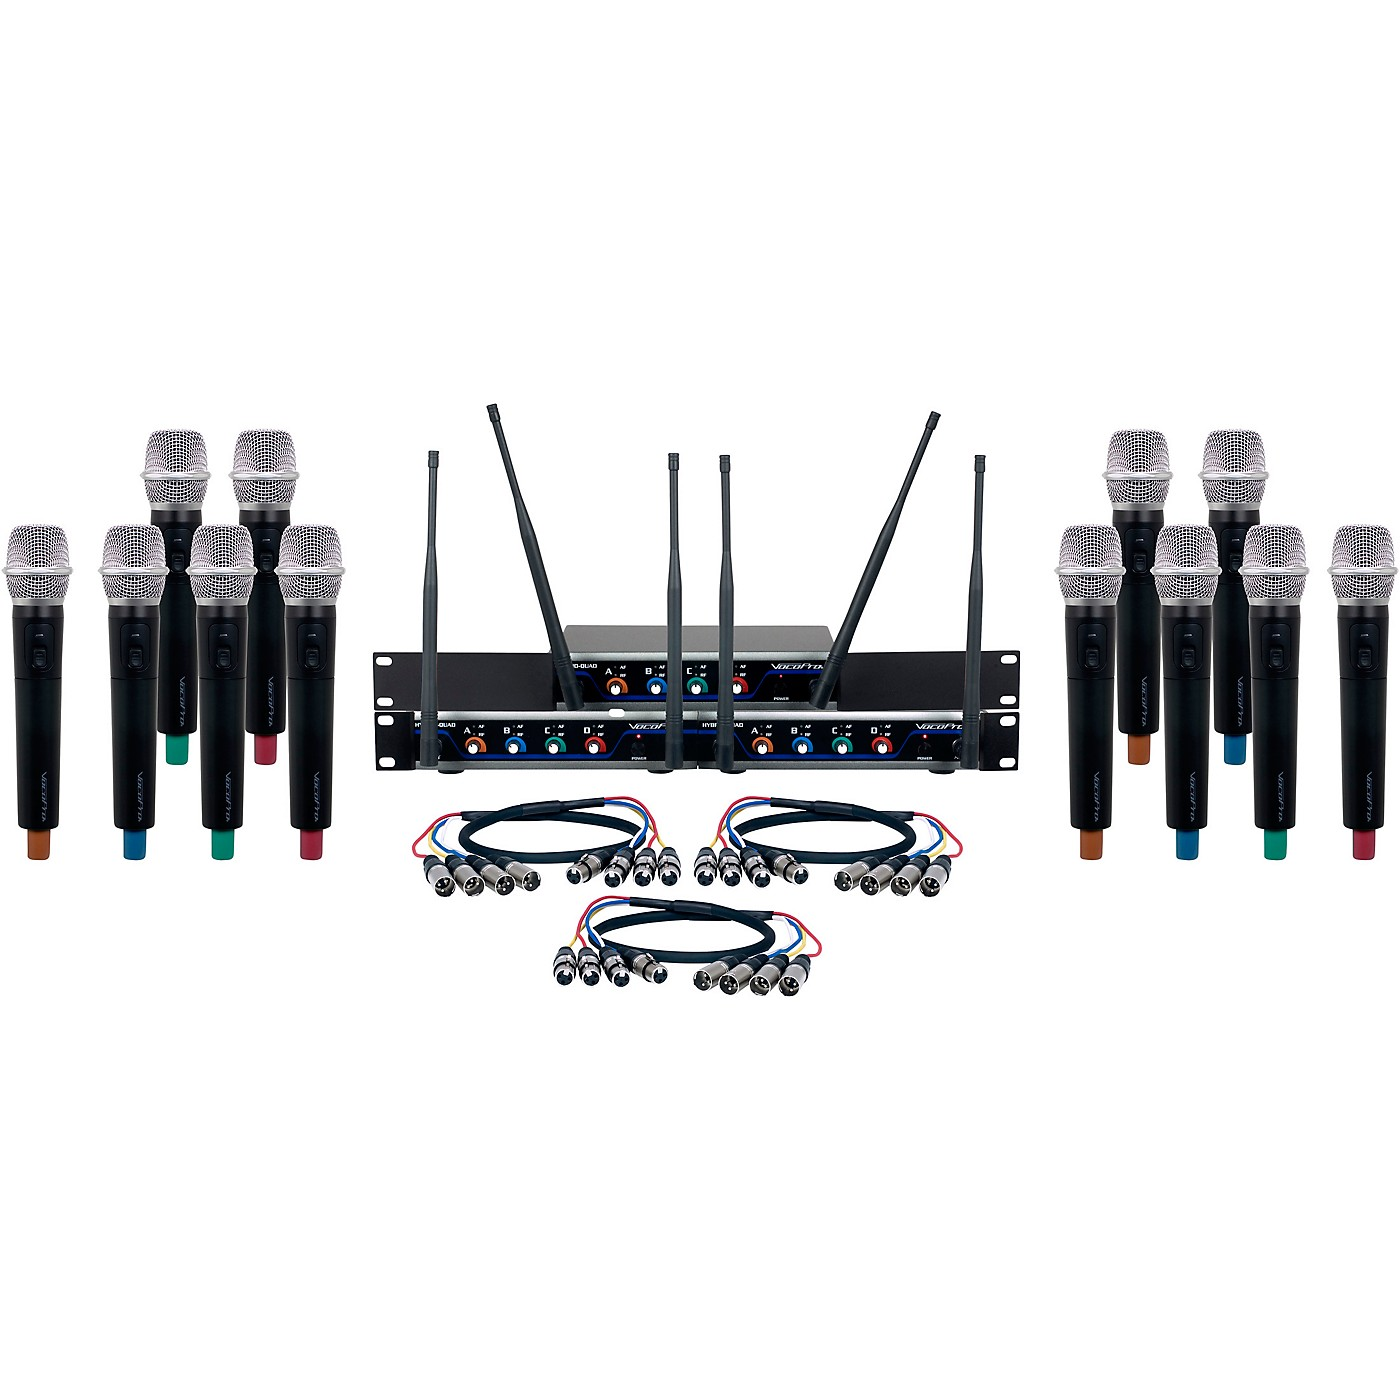 VocoPro Digital-Acapella-12 12-Channel UHF Wireless Handheld Microphone System thumbnail